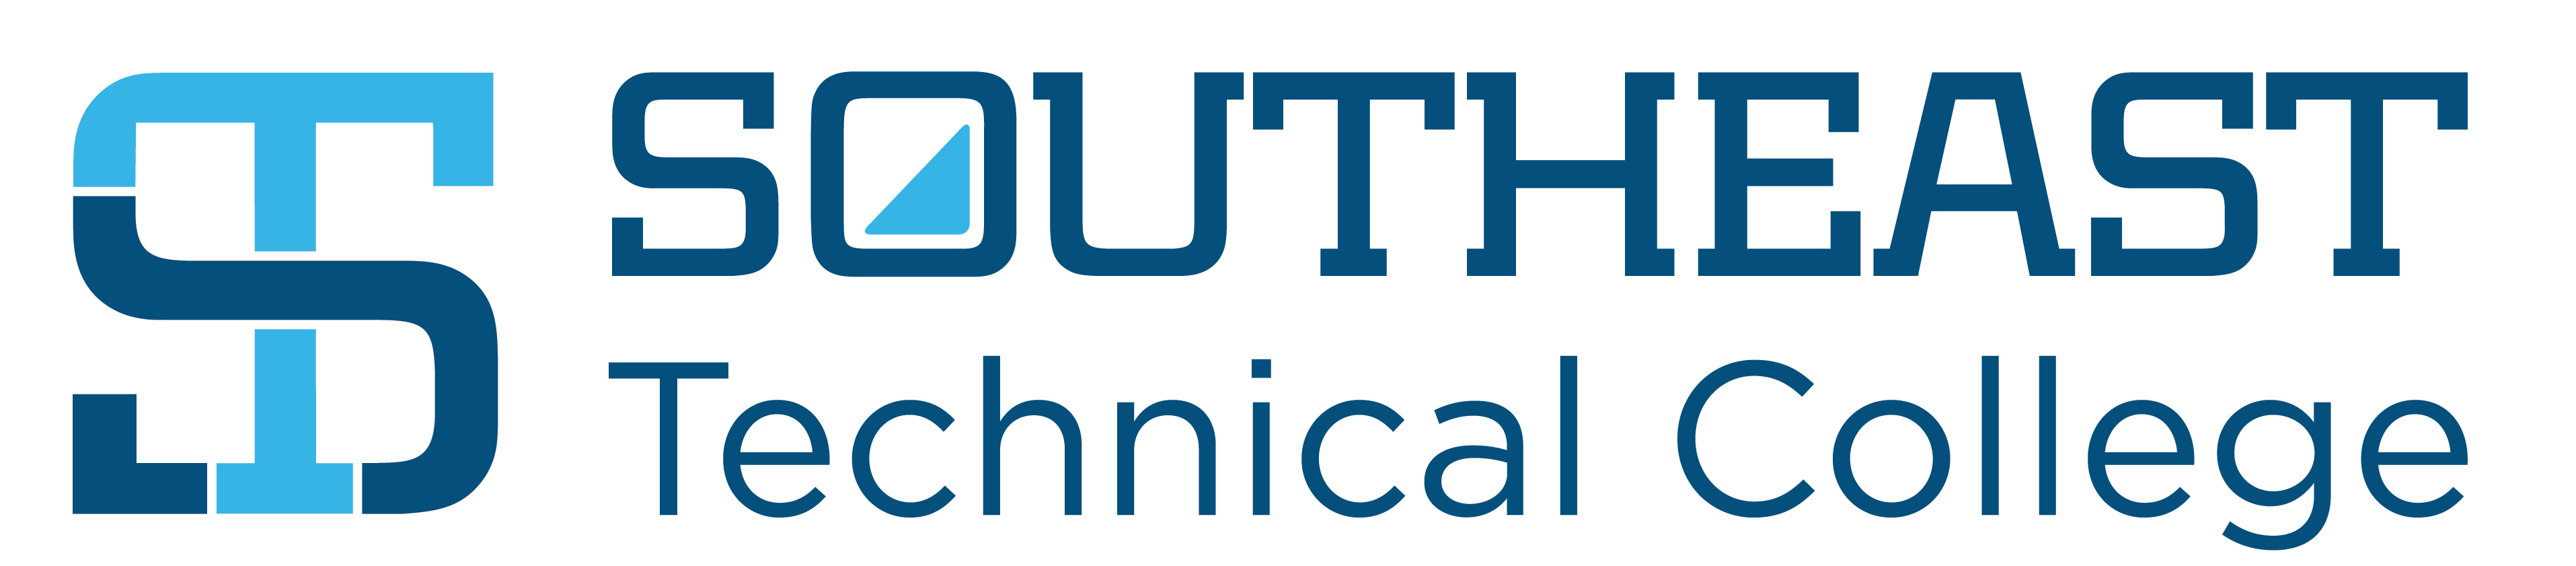 Southeast Technical College logo